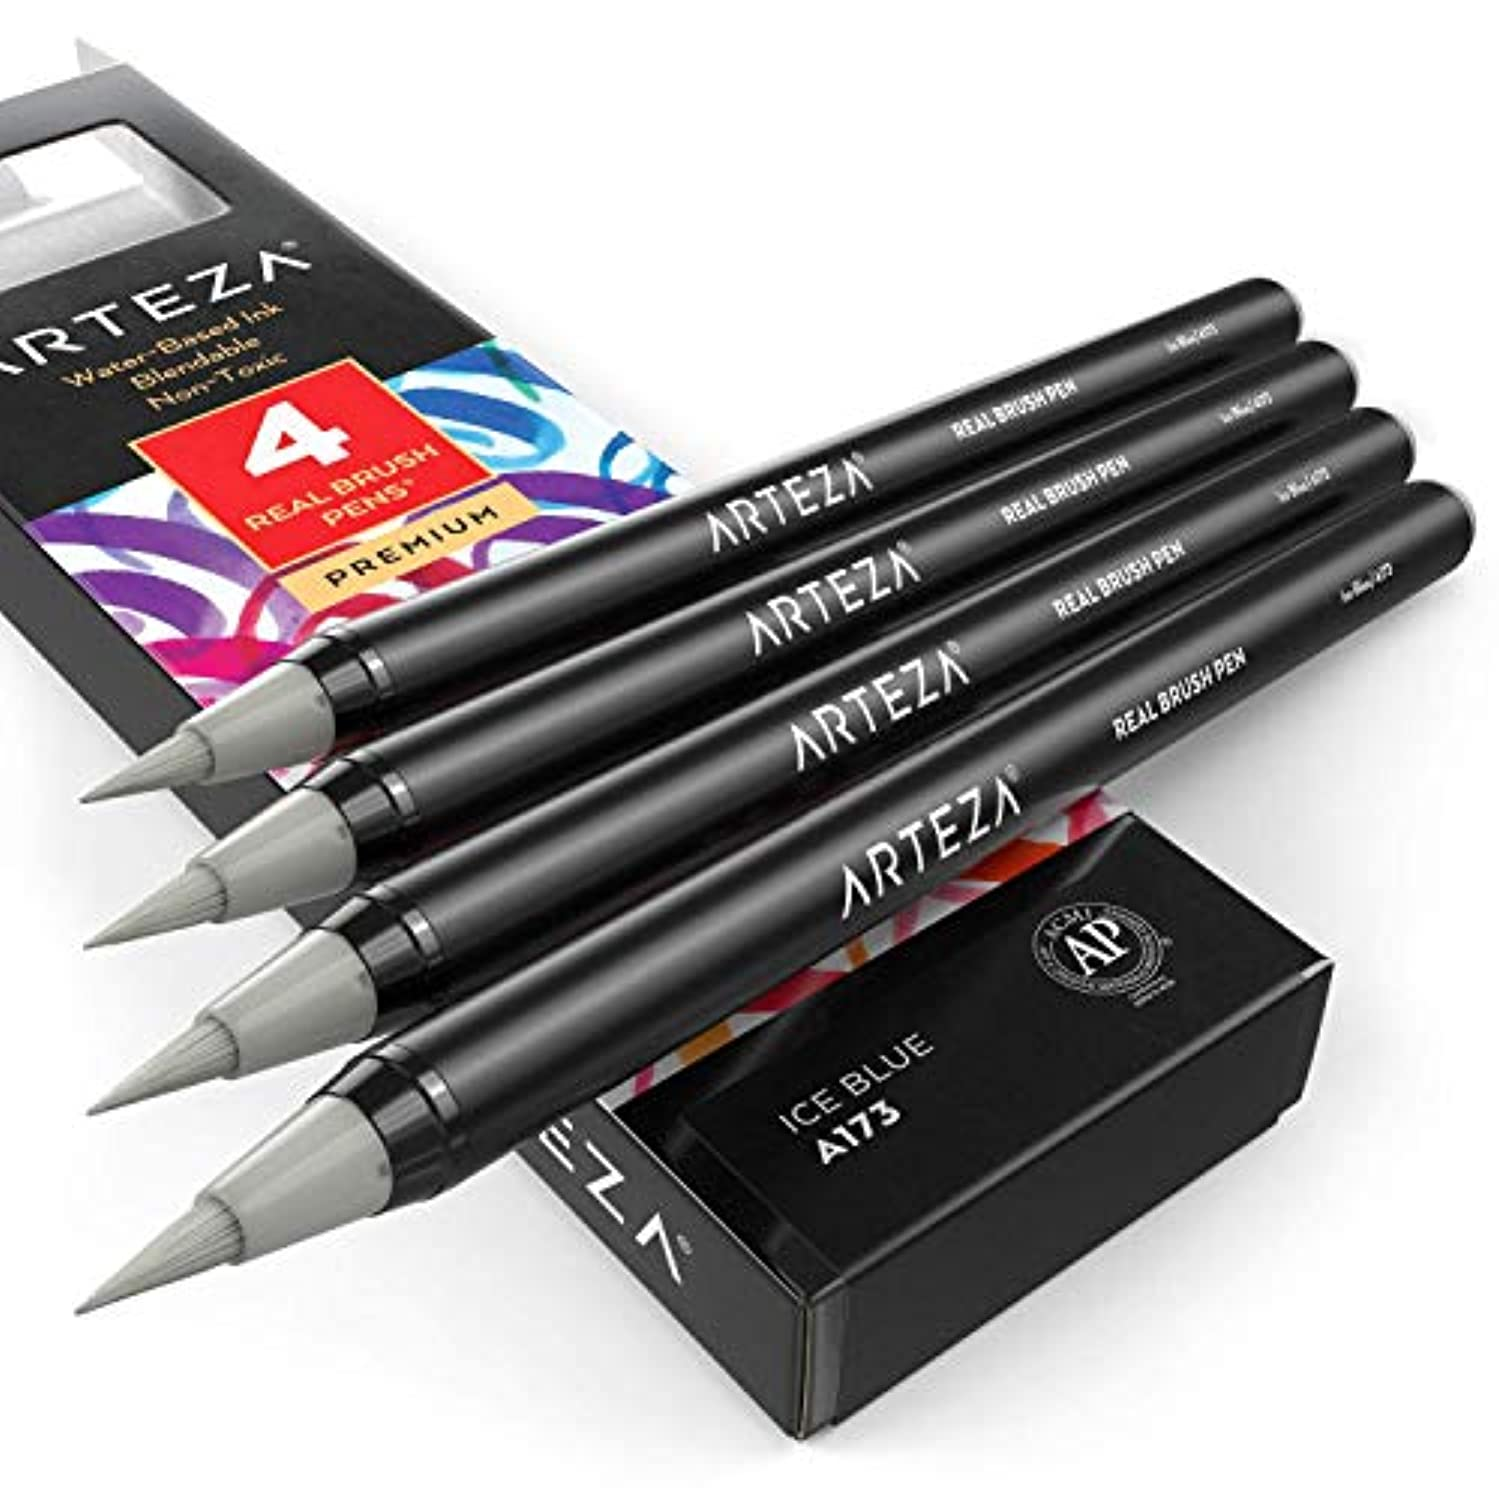 Arteza Real Brush Pens (A173 Ice Blue), Pack of 4, for Watercolor Painting with Flexible Nylon Brush Tips, Paint Markers for Coloring, Calligraphy and Drawing